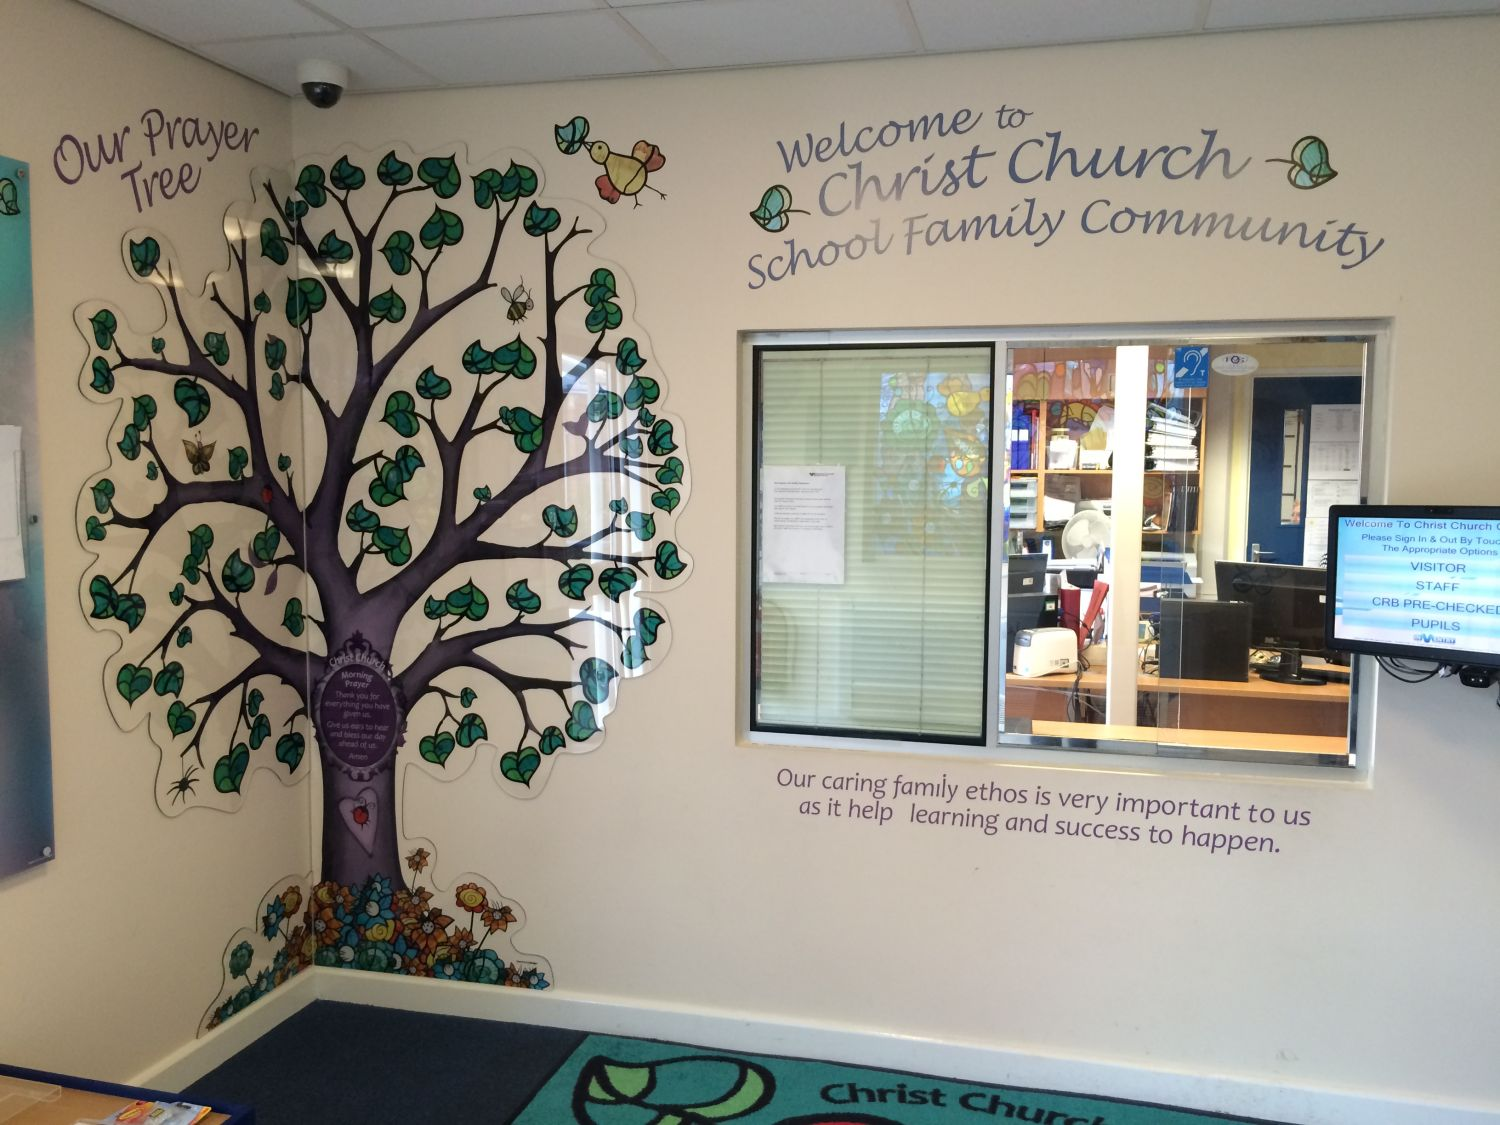 School Entrance Foyer And Acrylic Prayer Tree Display Two Thirds